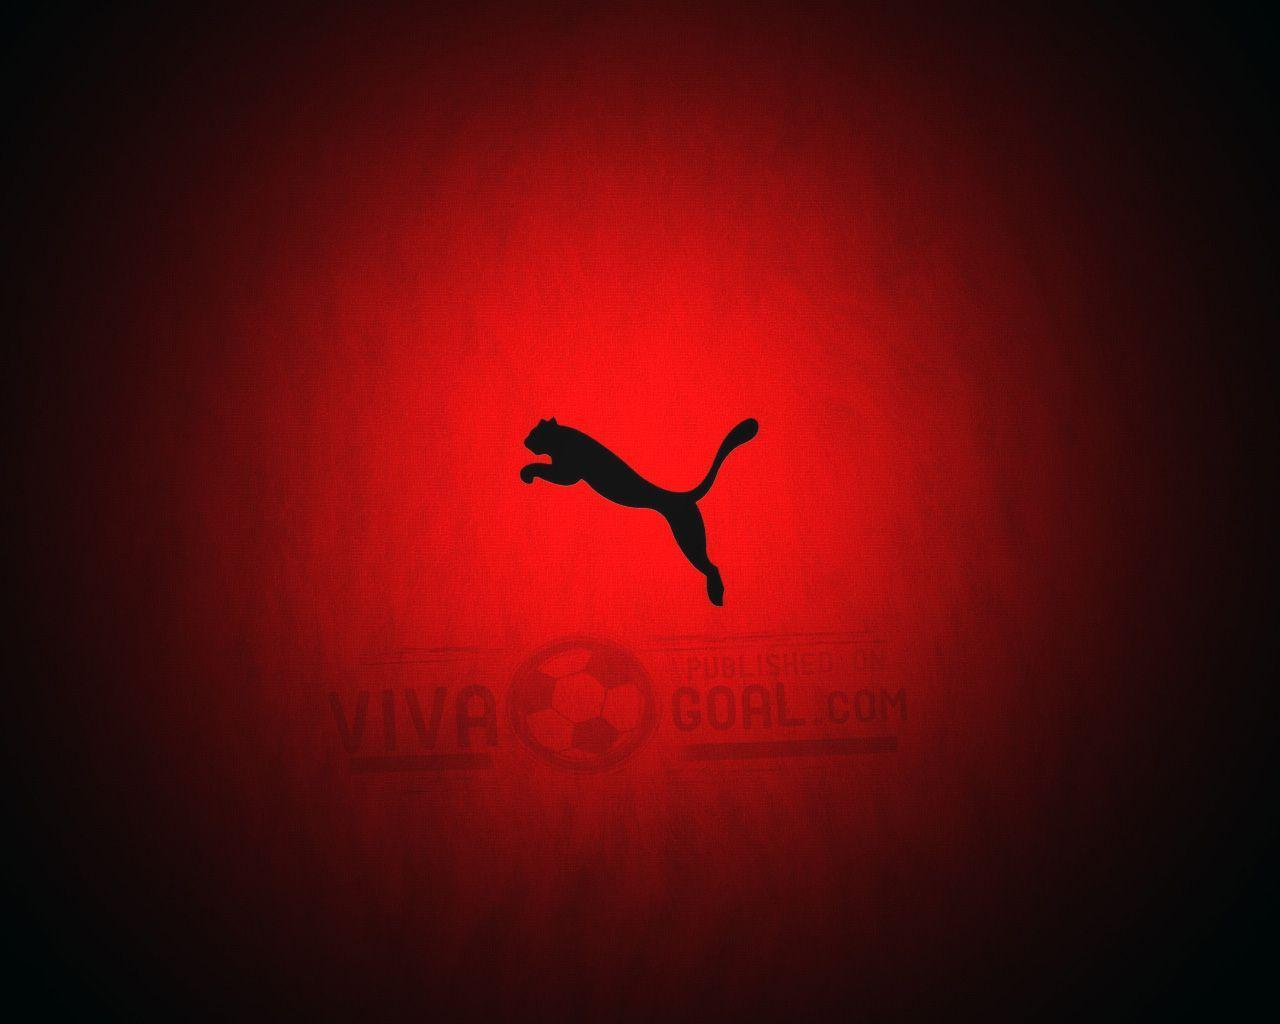 HD Puma wallpaper | Wallpaperbuzz.